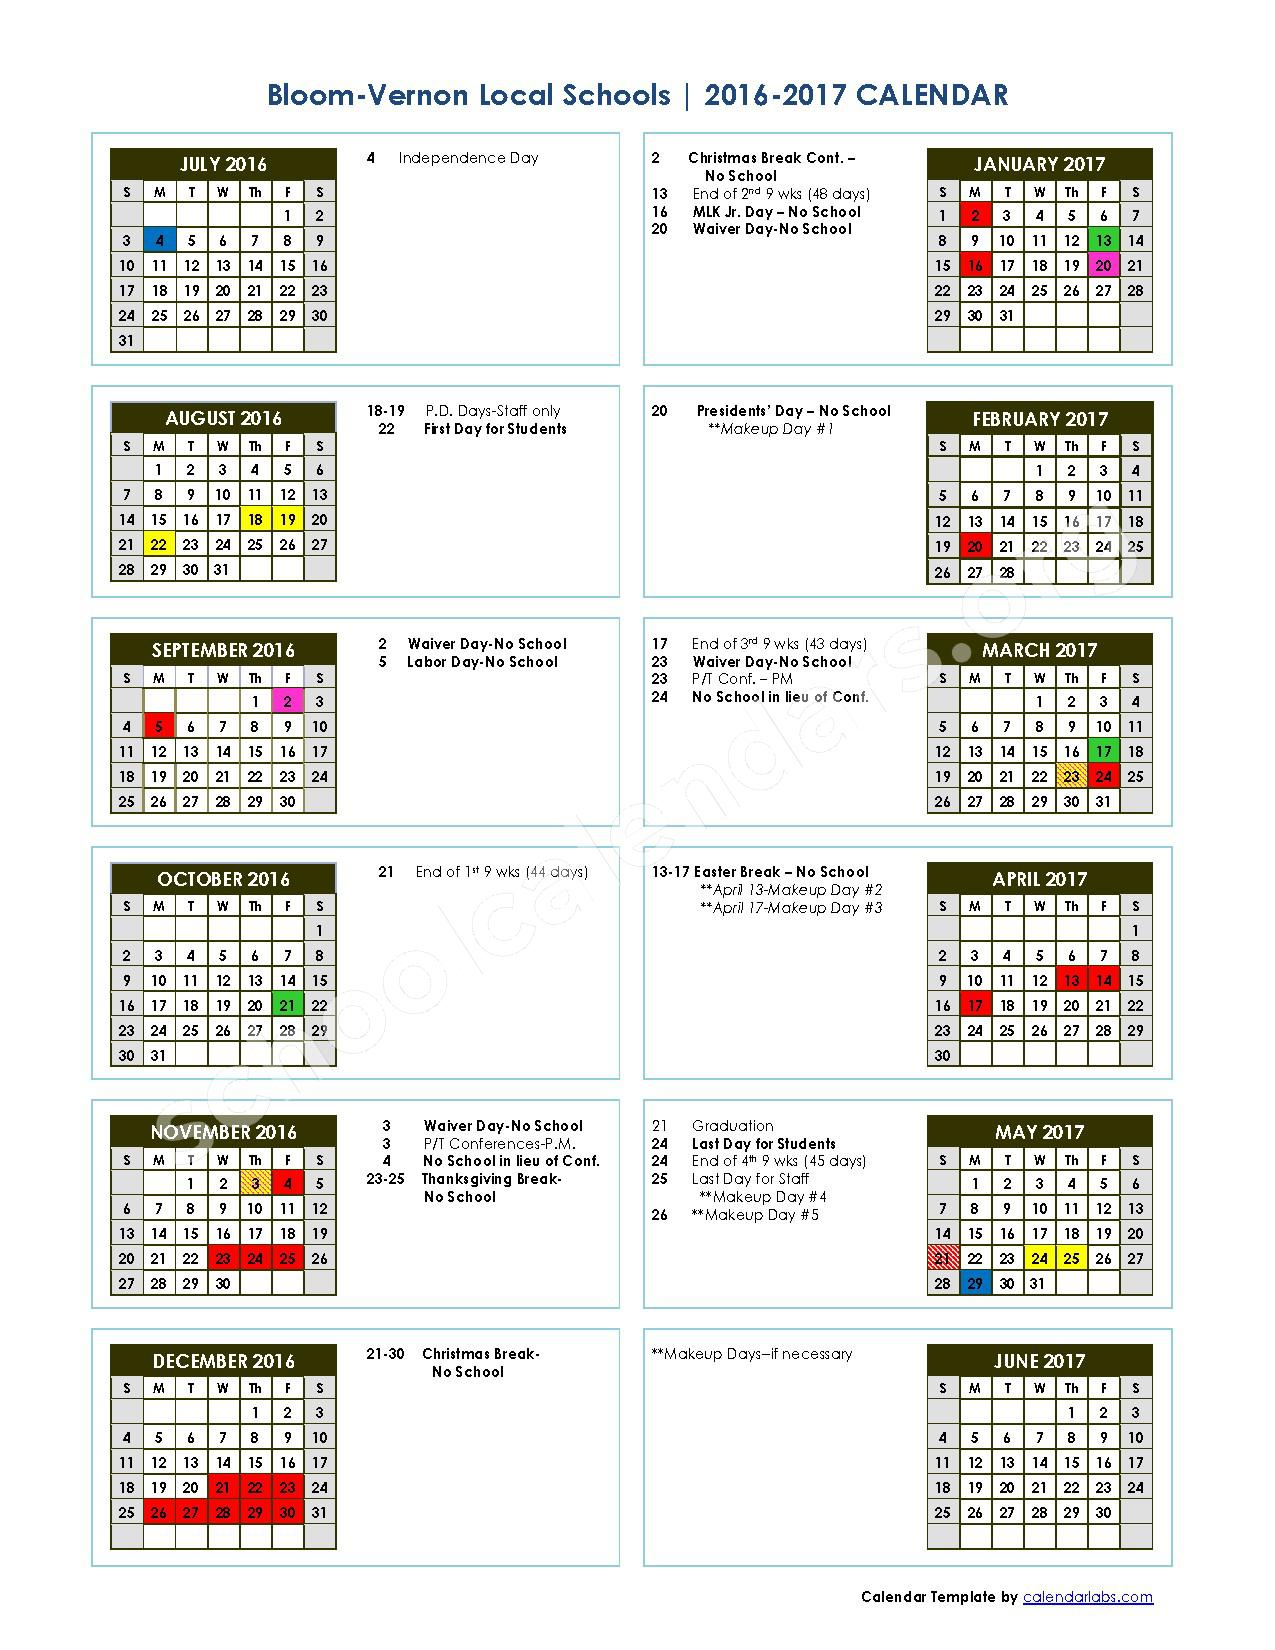 2016 - 2017 School Calendar – Bloom-Vernon Local Schools – page 1